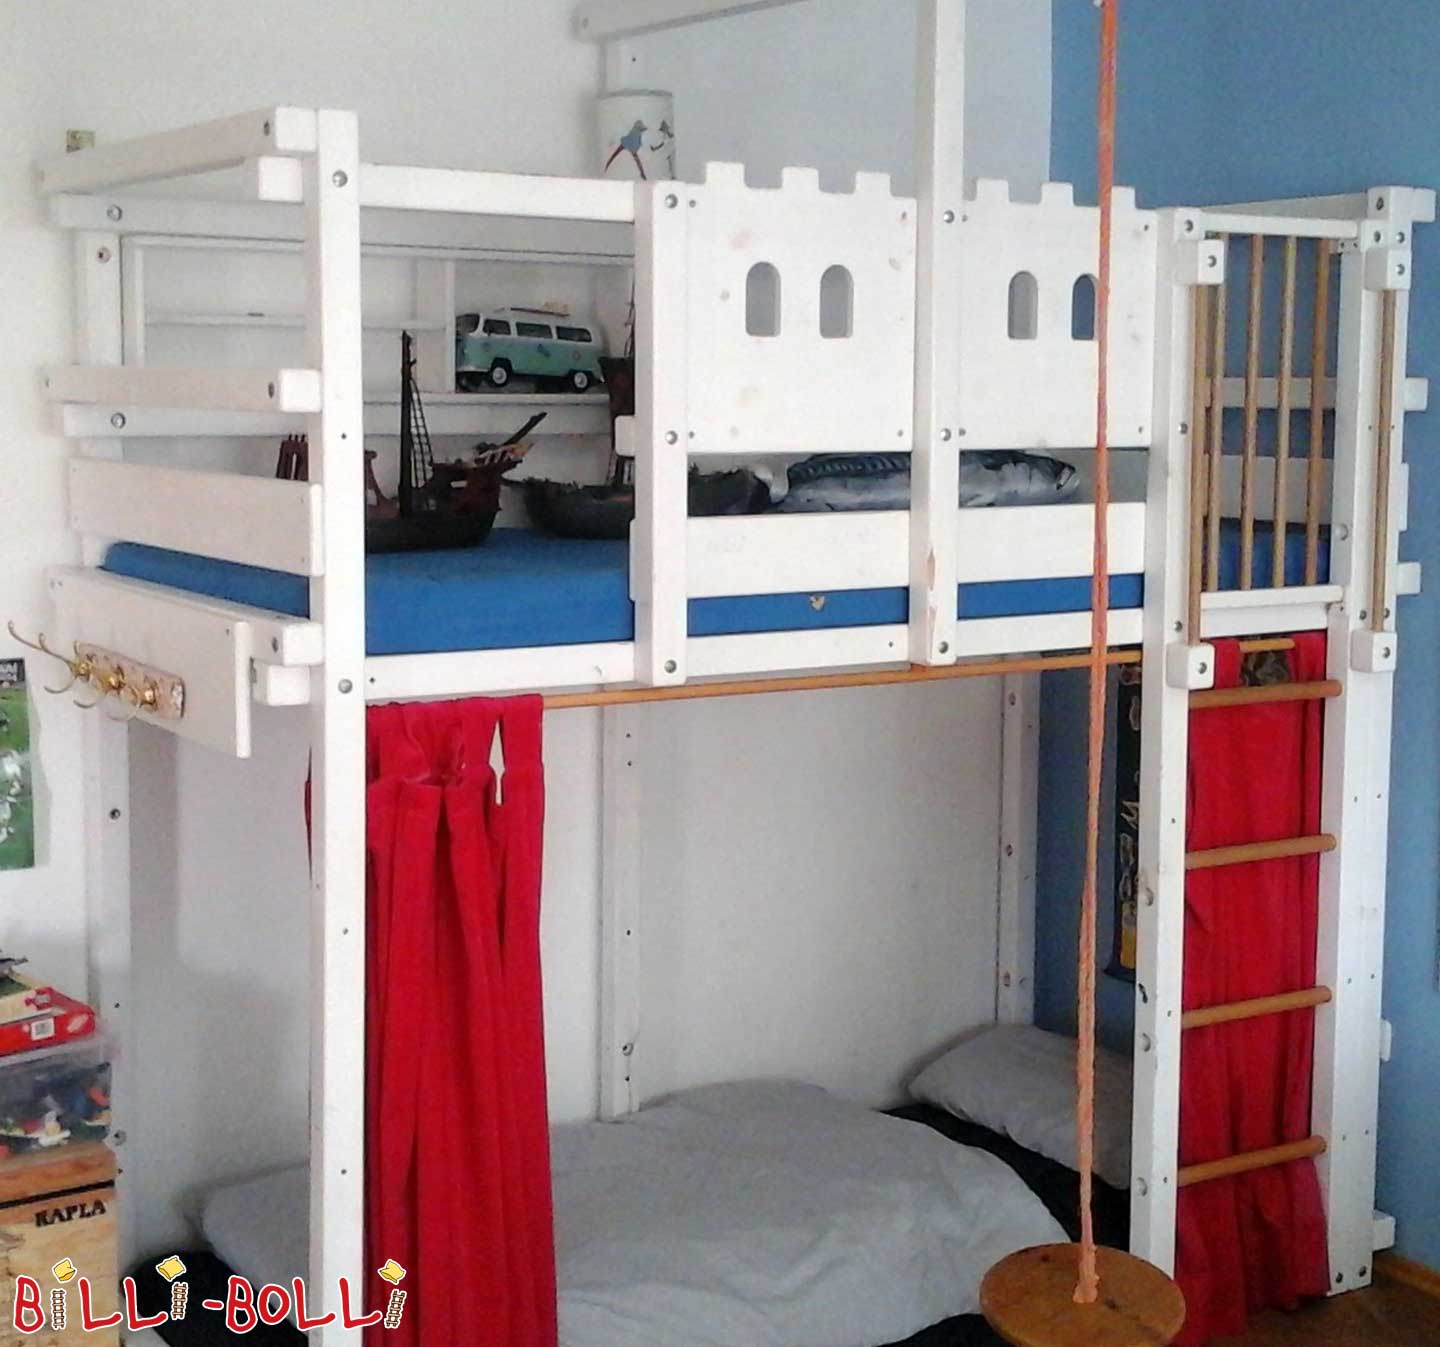 90 x 200 cm, pine Loft bed growing with, white lacquer (second hand loft bed)